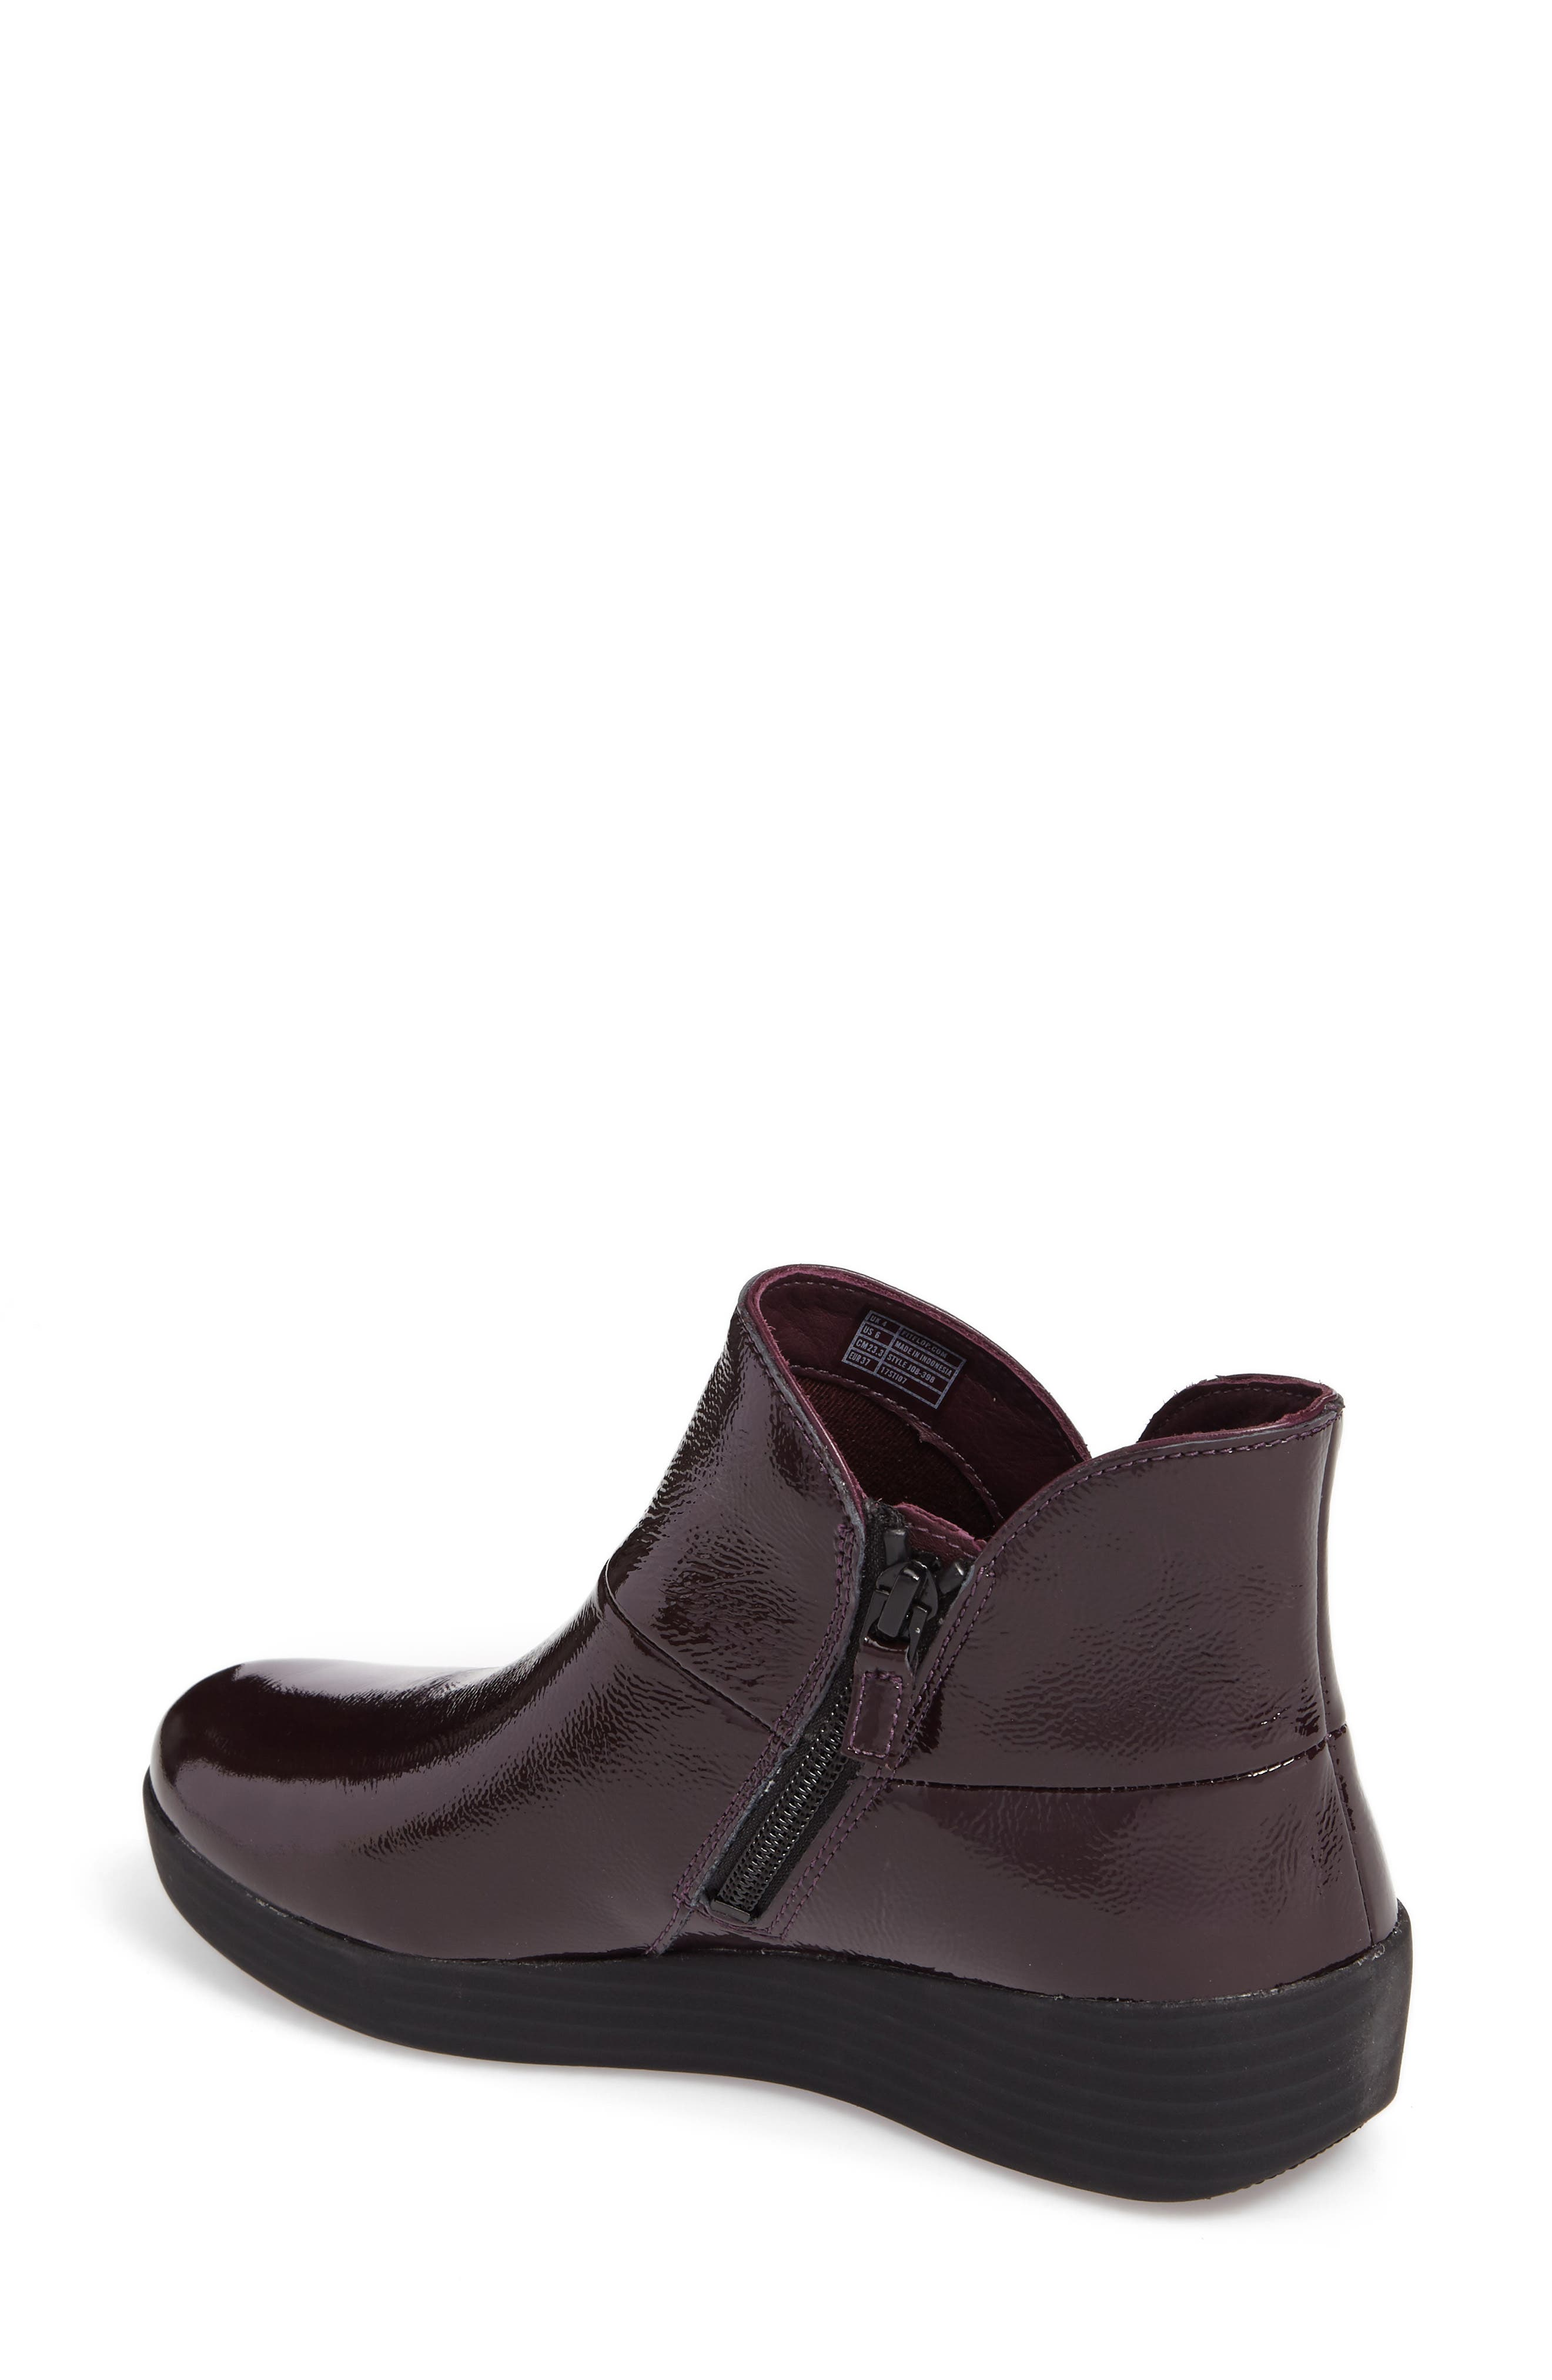 Supermod<sup>™</sup> II Ankle Boot,                             Alternate thumbnail 2, color,                             547